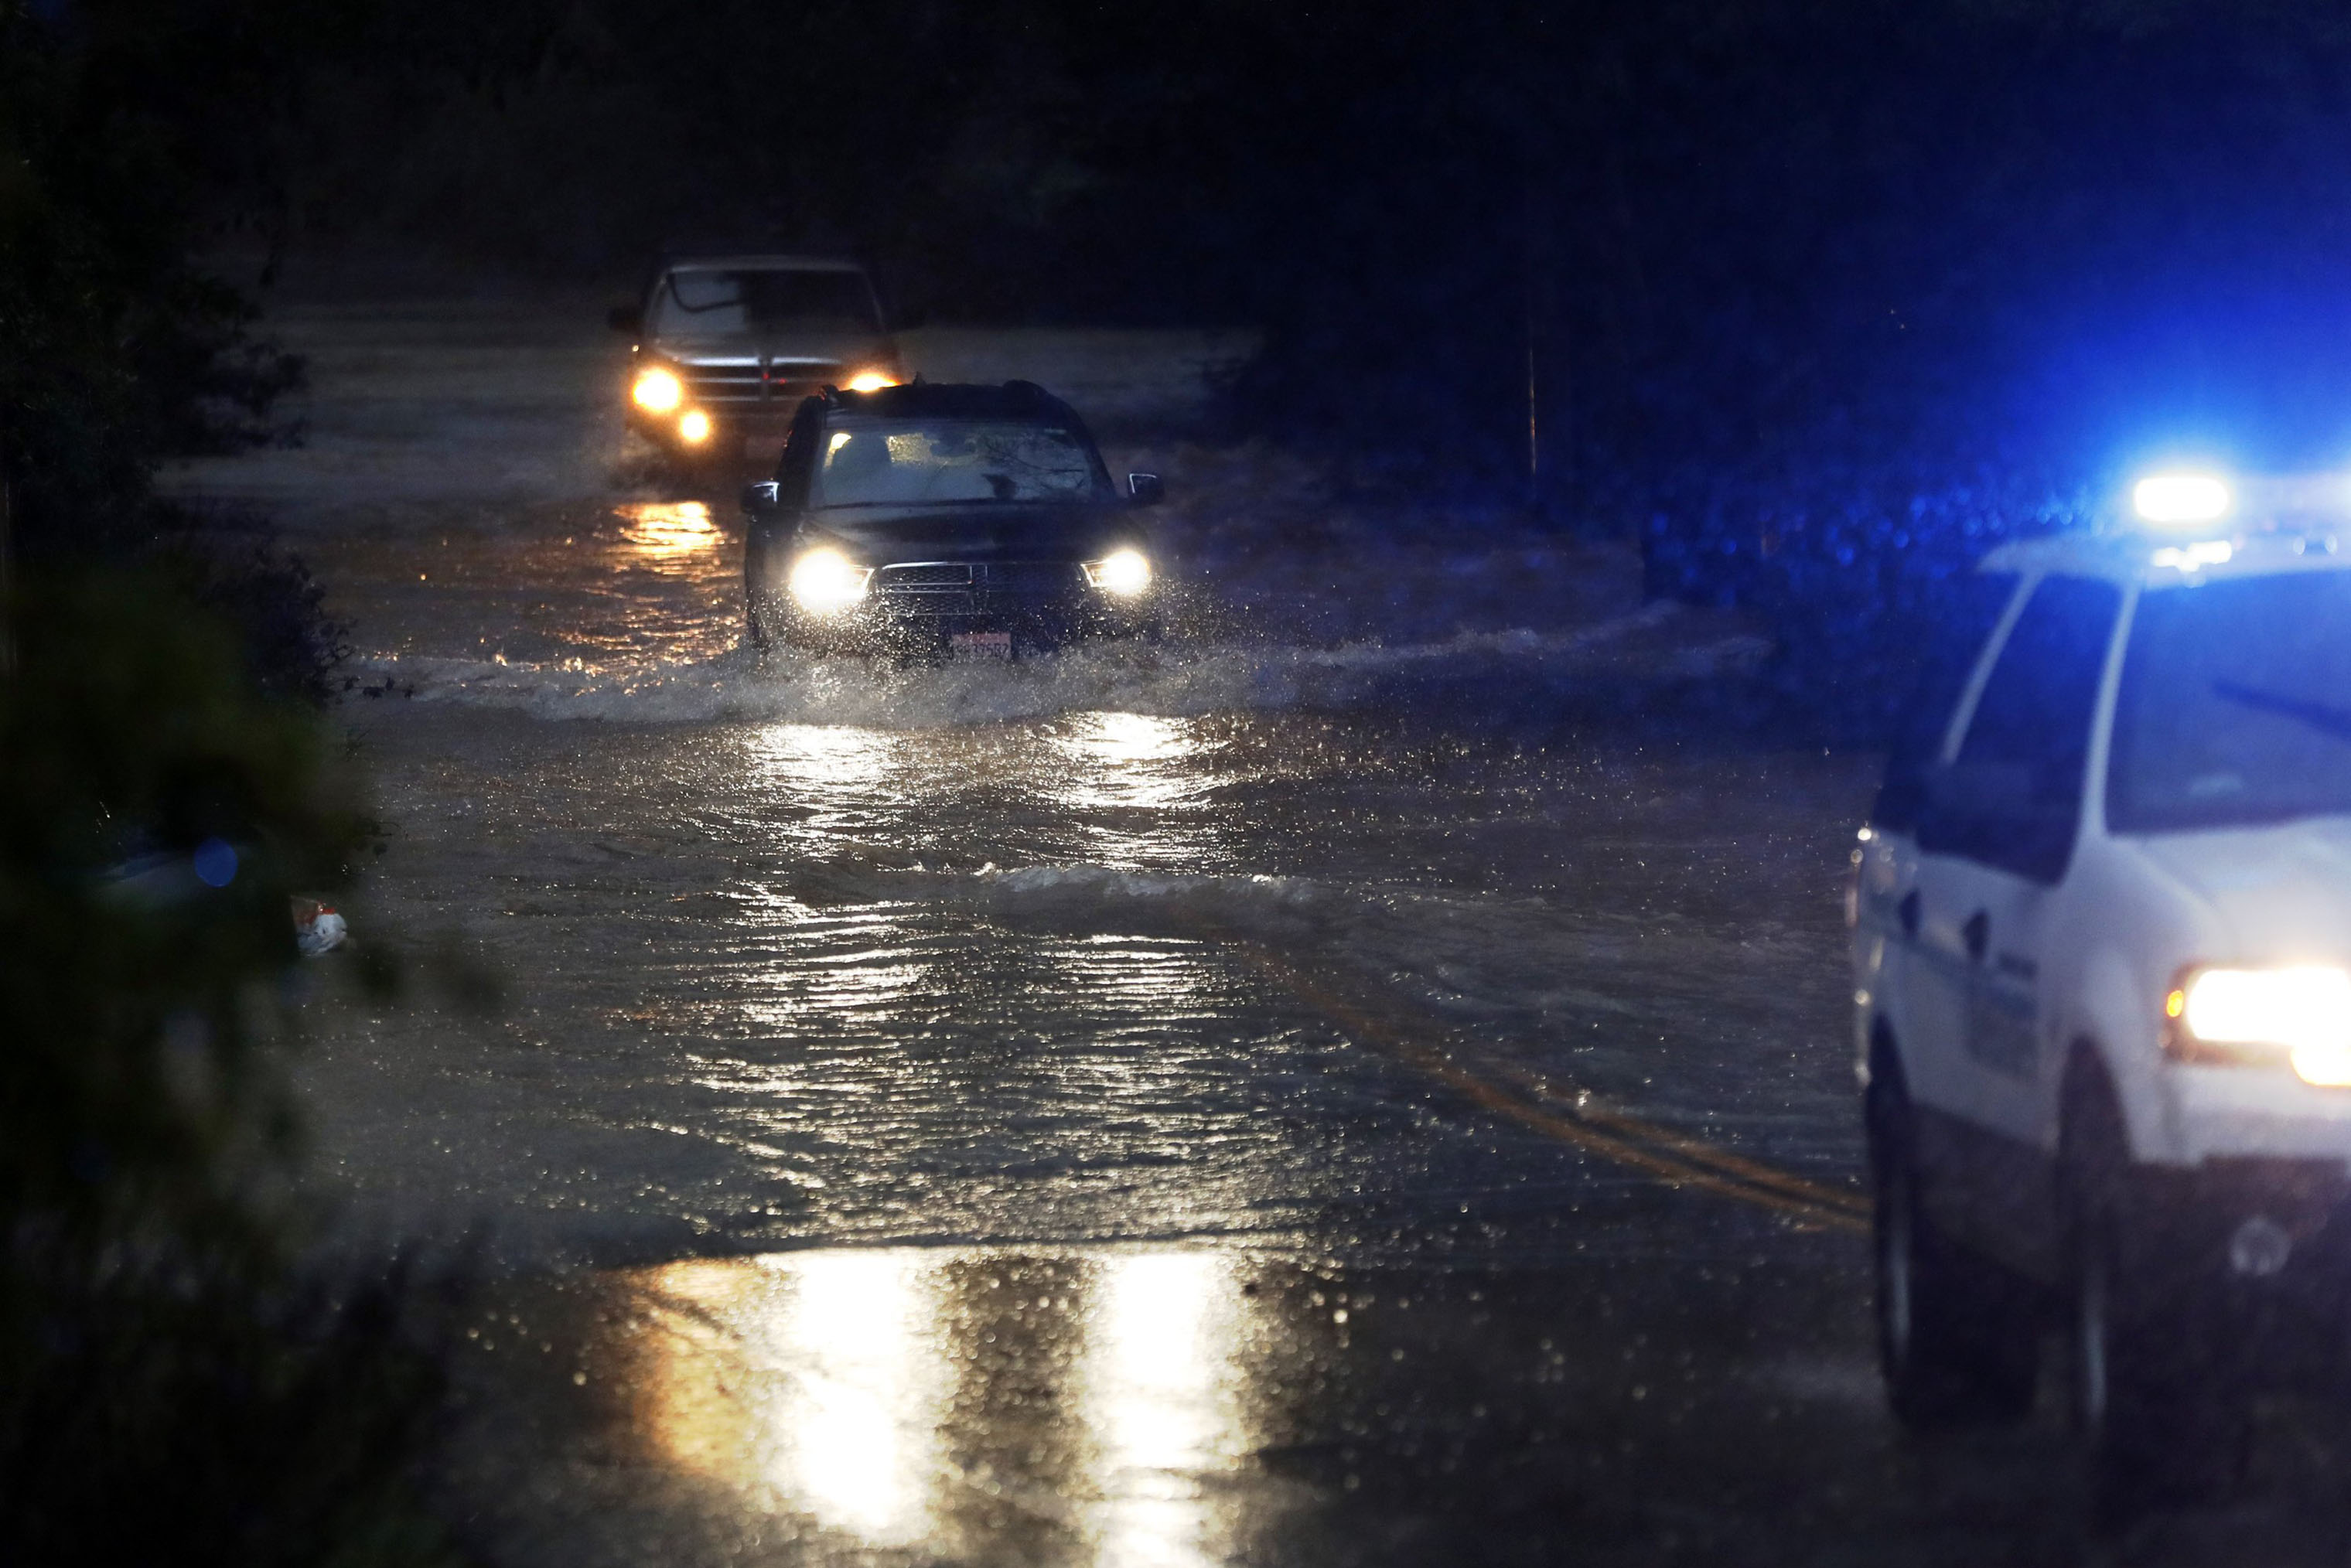 Two vehicles follow a Sonoma County Sheriff's vehicle through flooded Neeley Road as the Russian River rises towards flood stage in Guerneville, California on Feb. 26, 2019. The Sonoma County Sheriff's Office issued mandatory evacuations in communities along the Russian River and urged people to  evacuate now.  As of 9:32 p.m. on Feb. 26, the river had reached 35.1 feet.